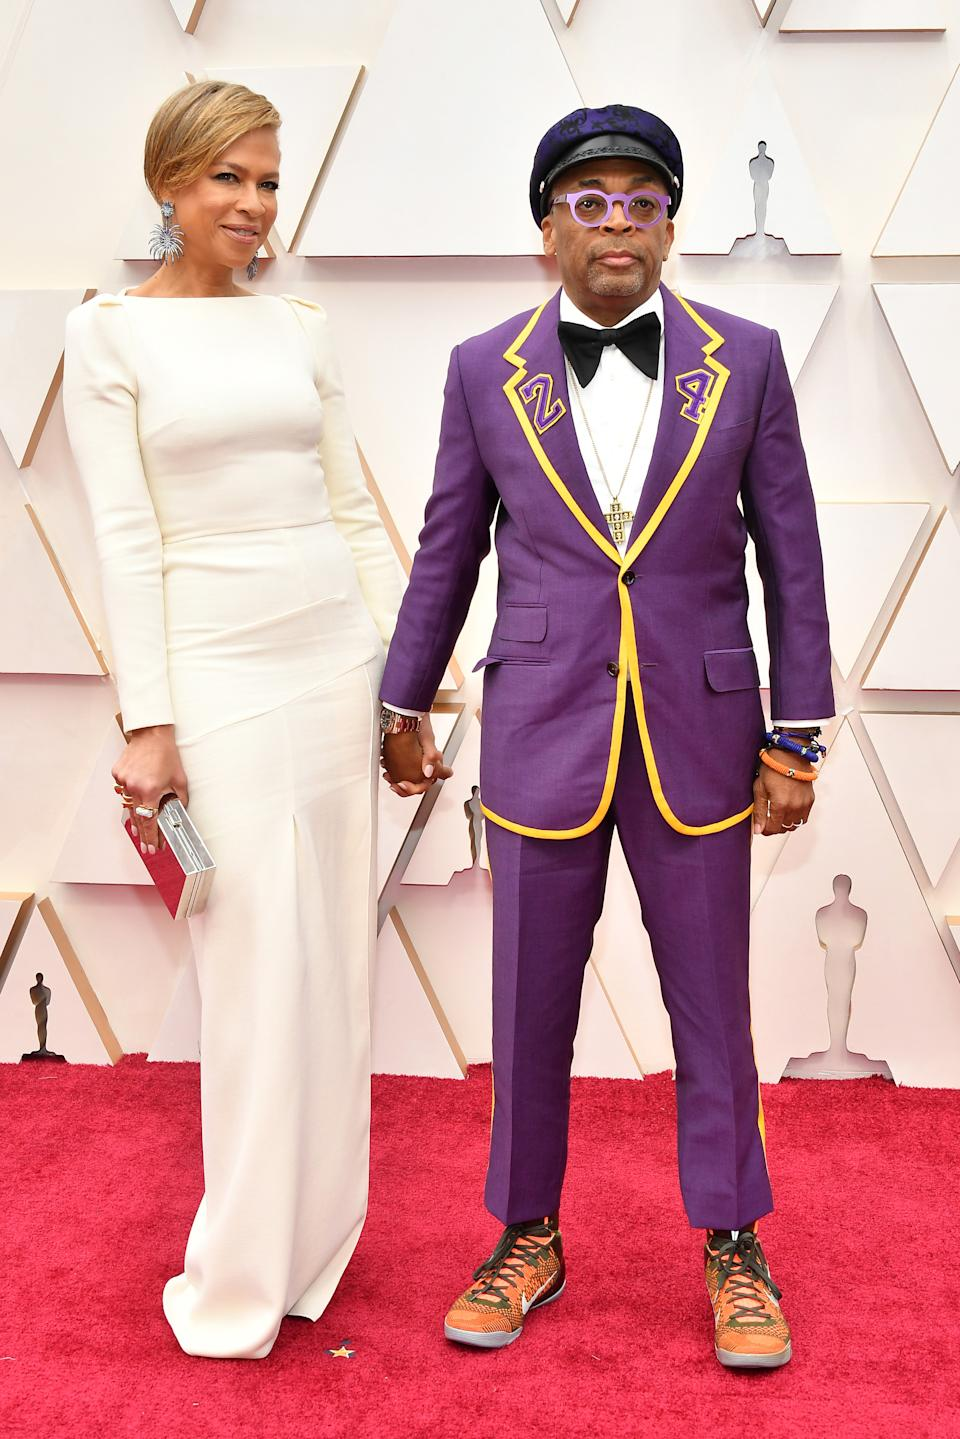 Director Spike Lee honoured Kobe Bryant with his custom purple tux that featured the late athlete and Oscar winner's number.